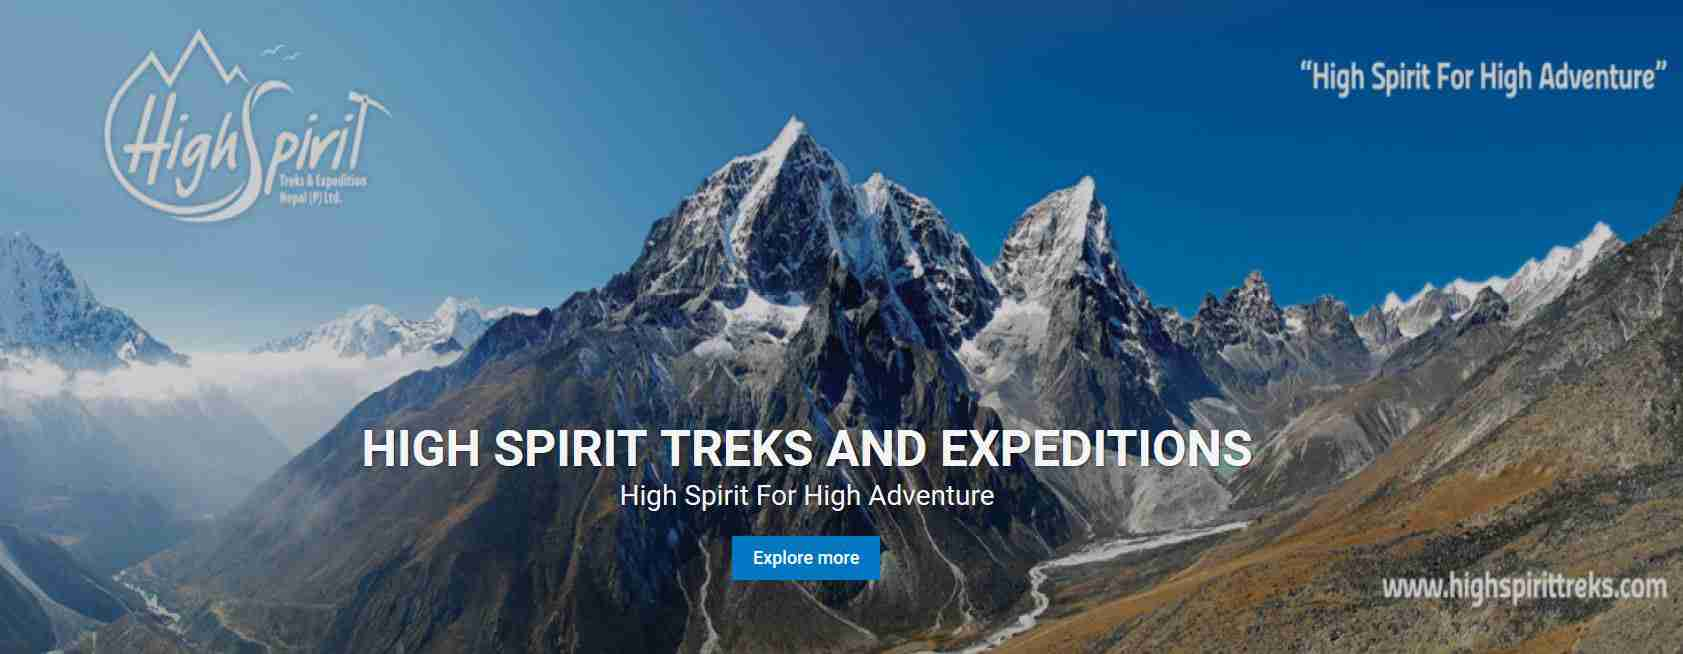 High Spirit Treks and Expeditions